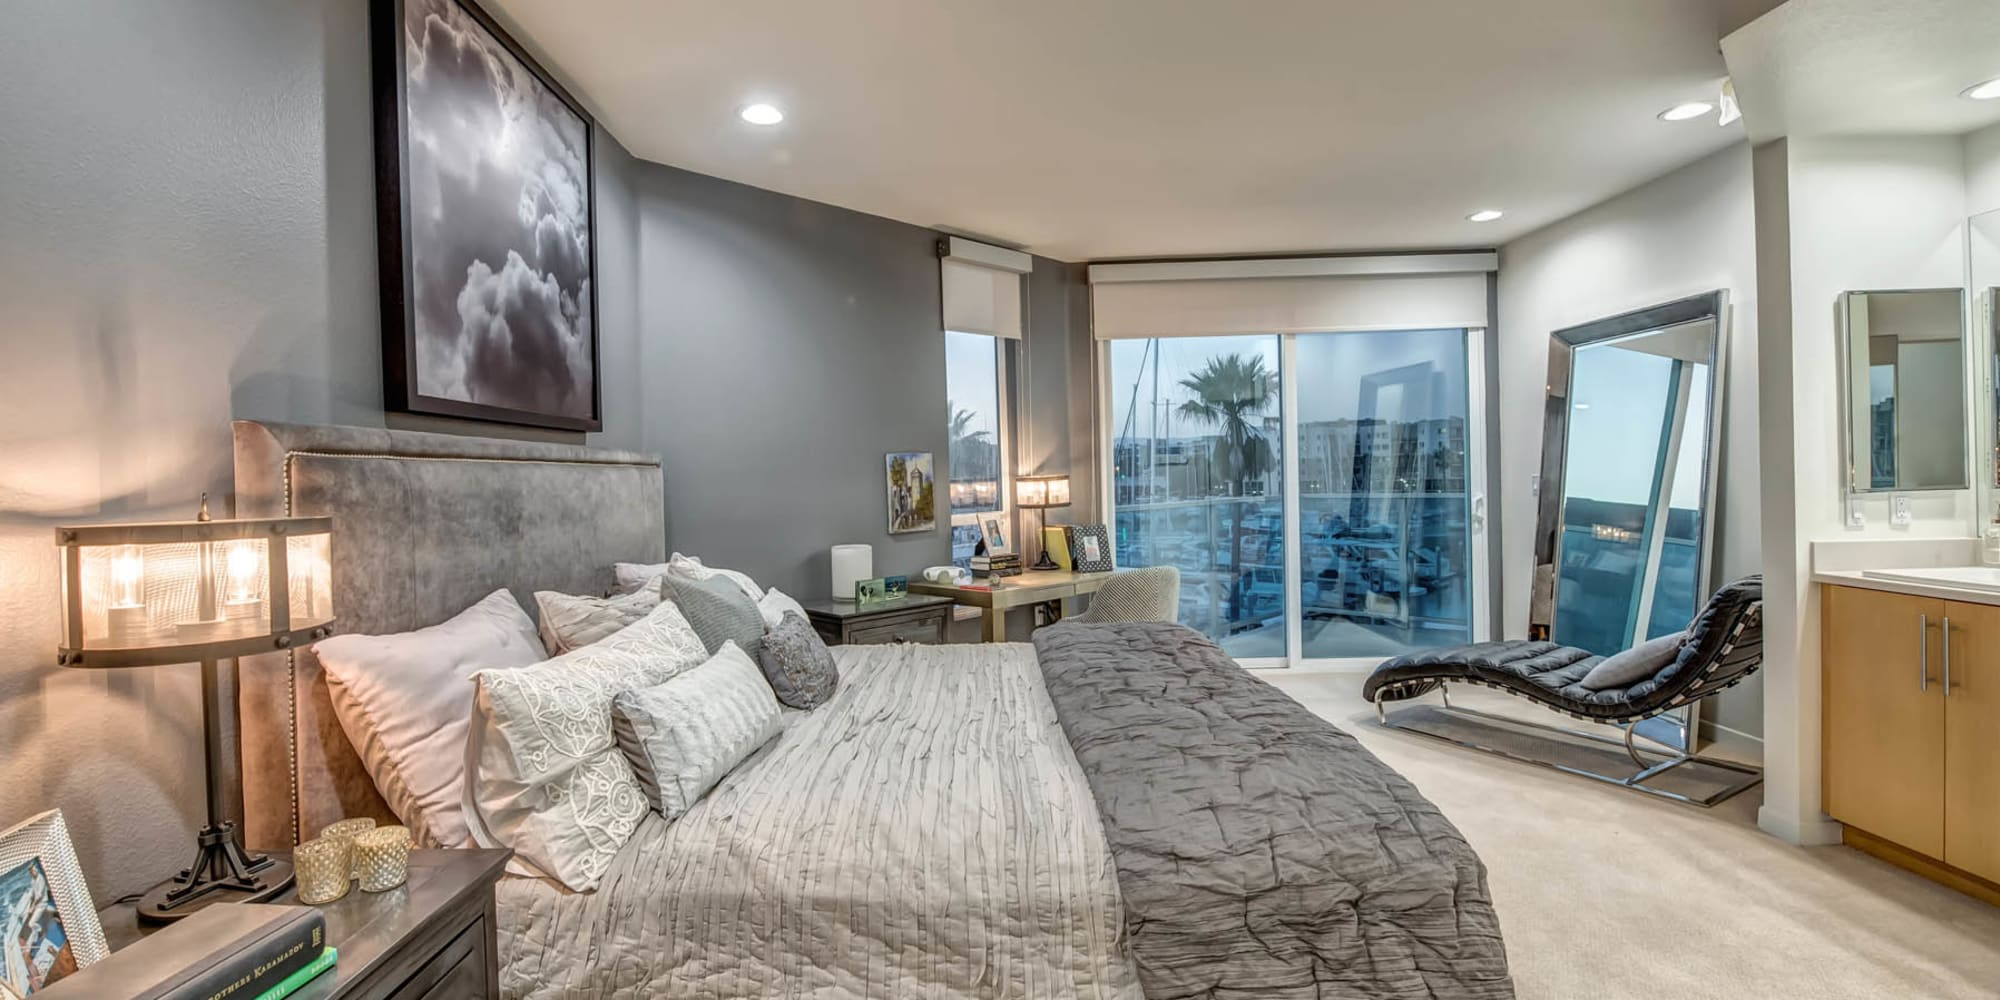 Beautiful ocean views from a model home's bedroom at Esprit Marina del Rey in Marina Del Rey, California